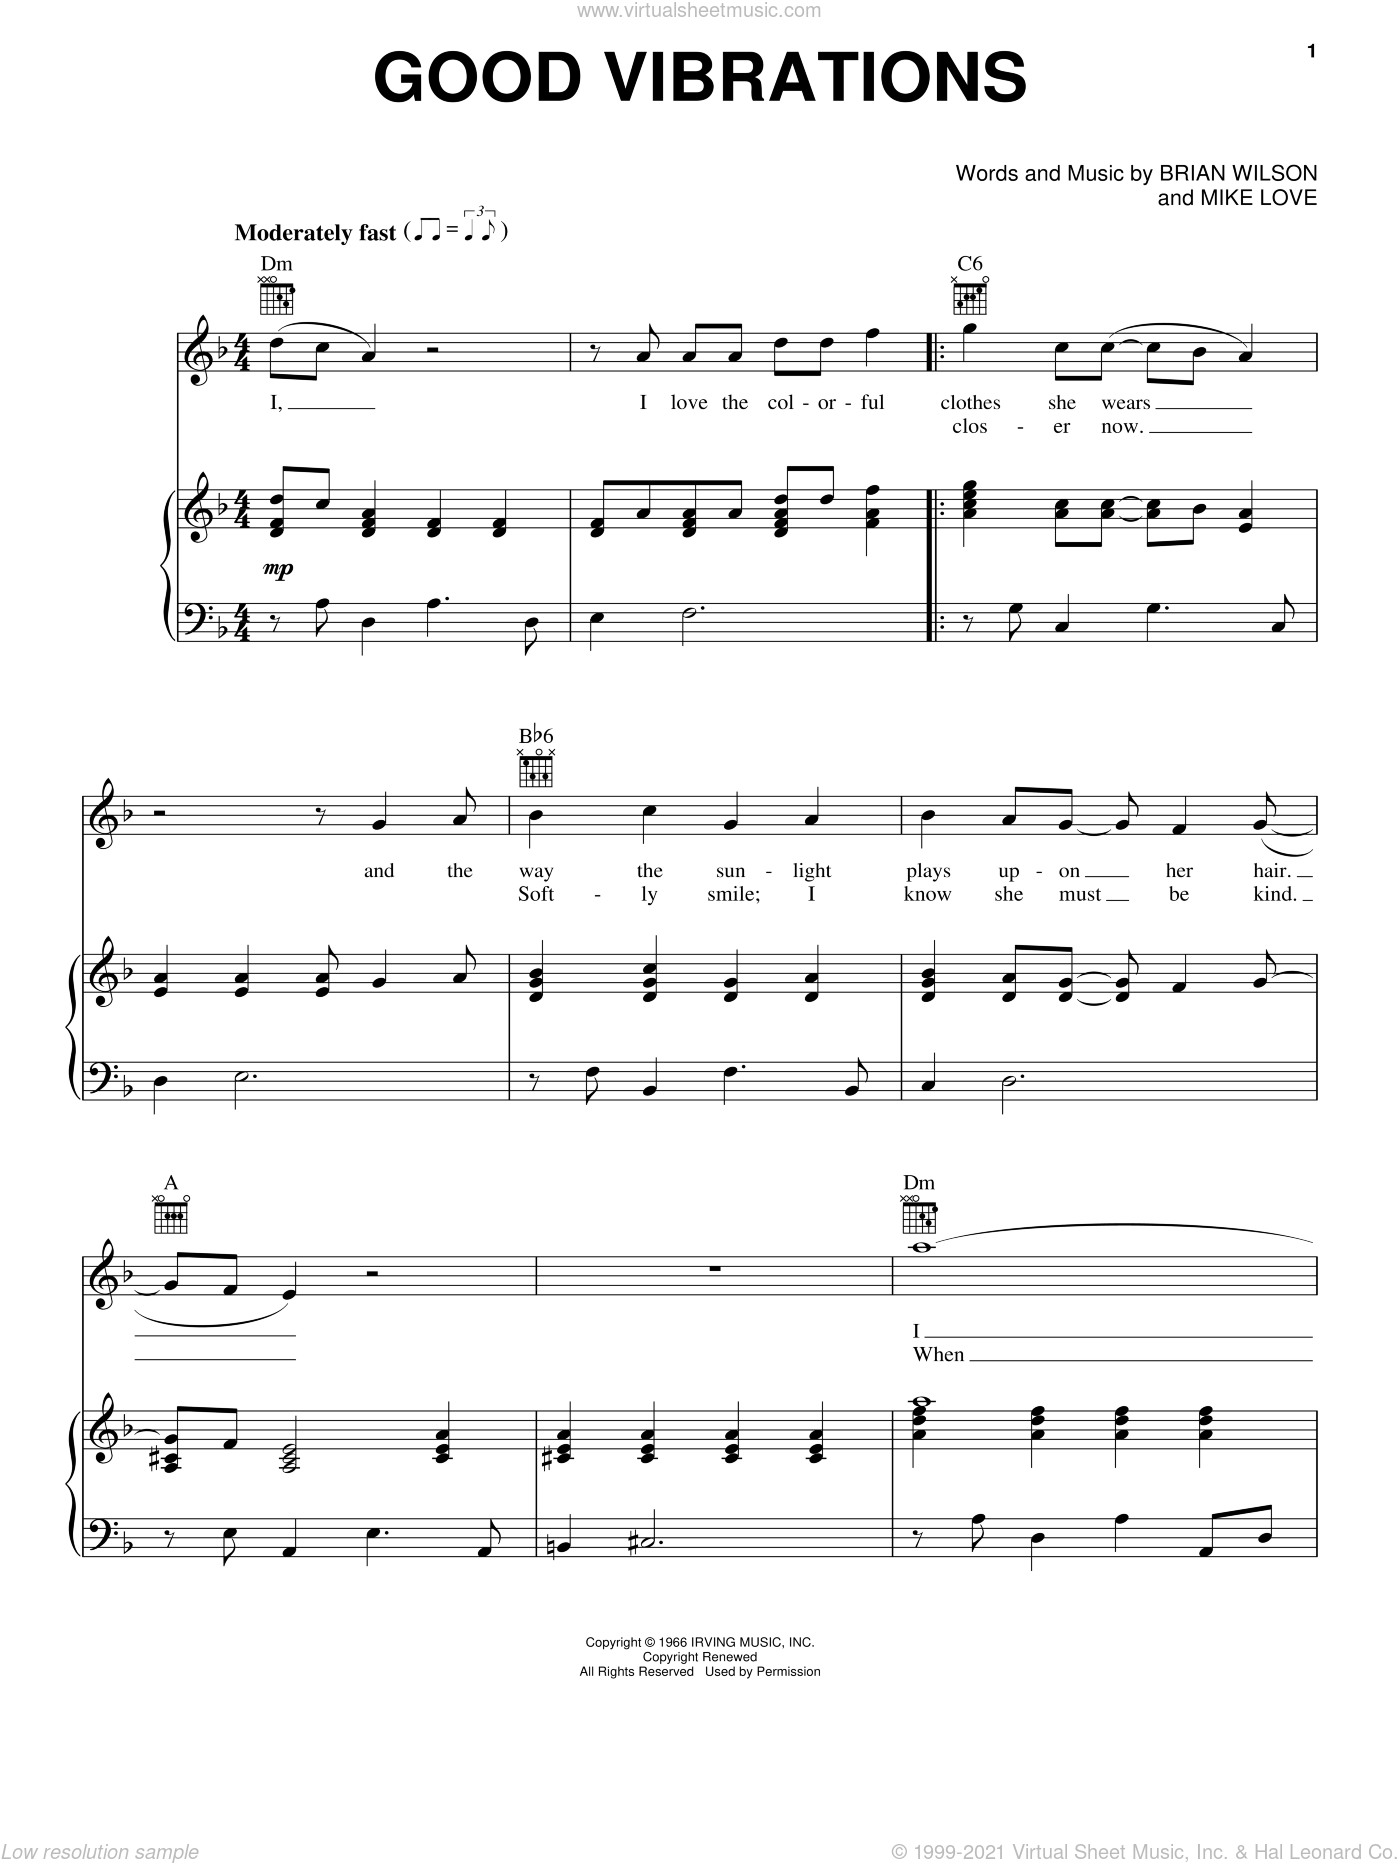 Good Vibrations sheet music for voice, piano or guitar by Mike Love, The Beach Boys and Brian Wilson. Score Image Preview.